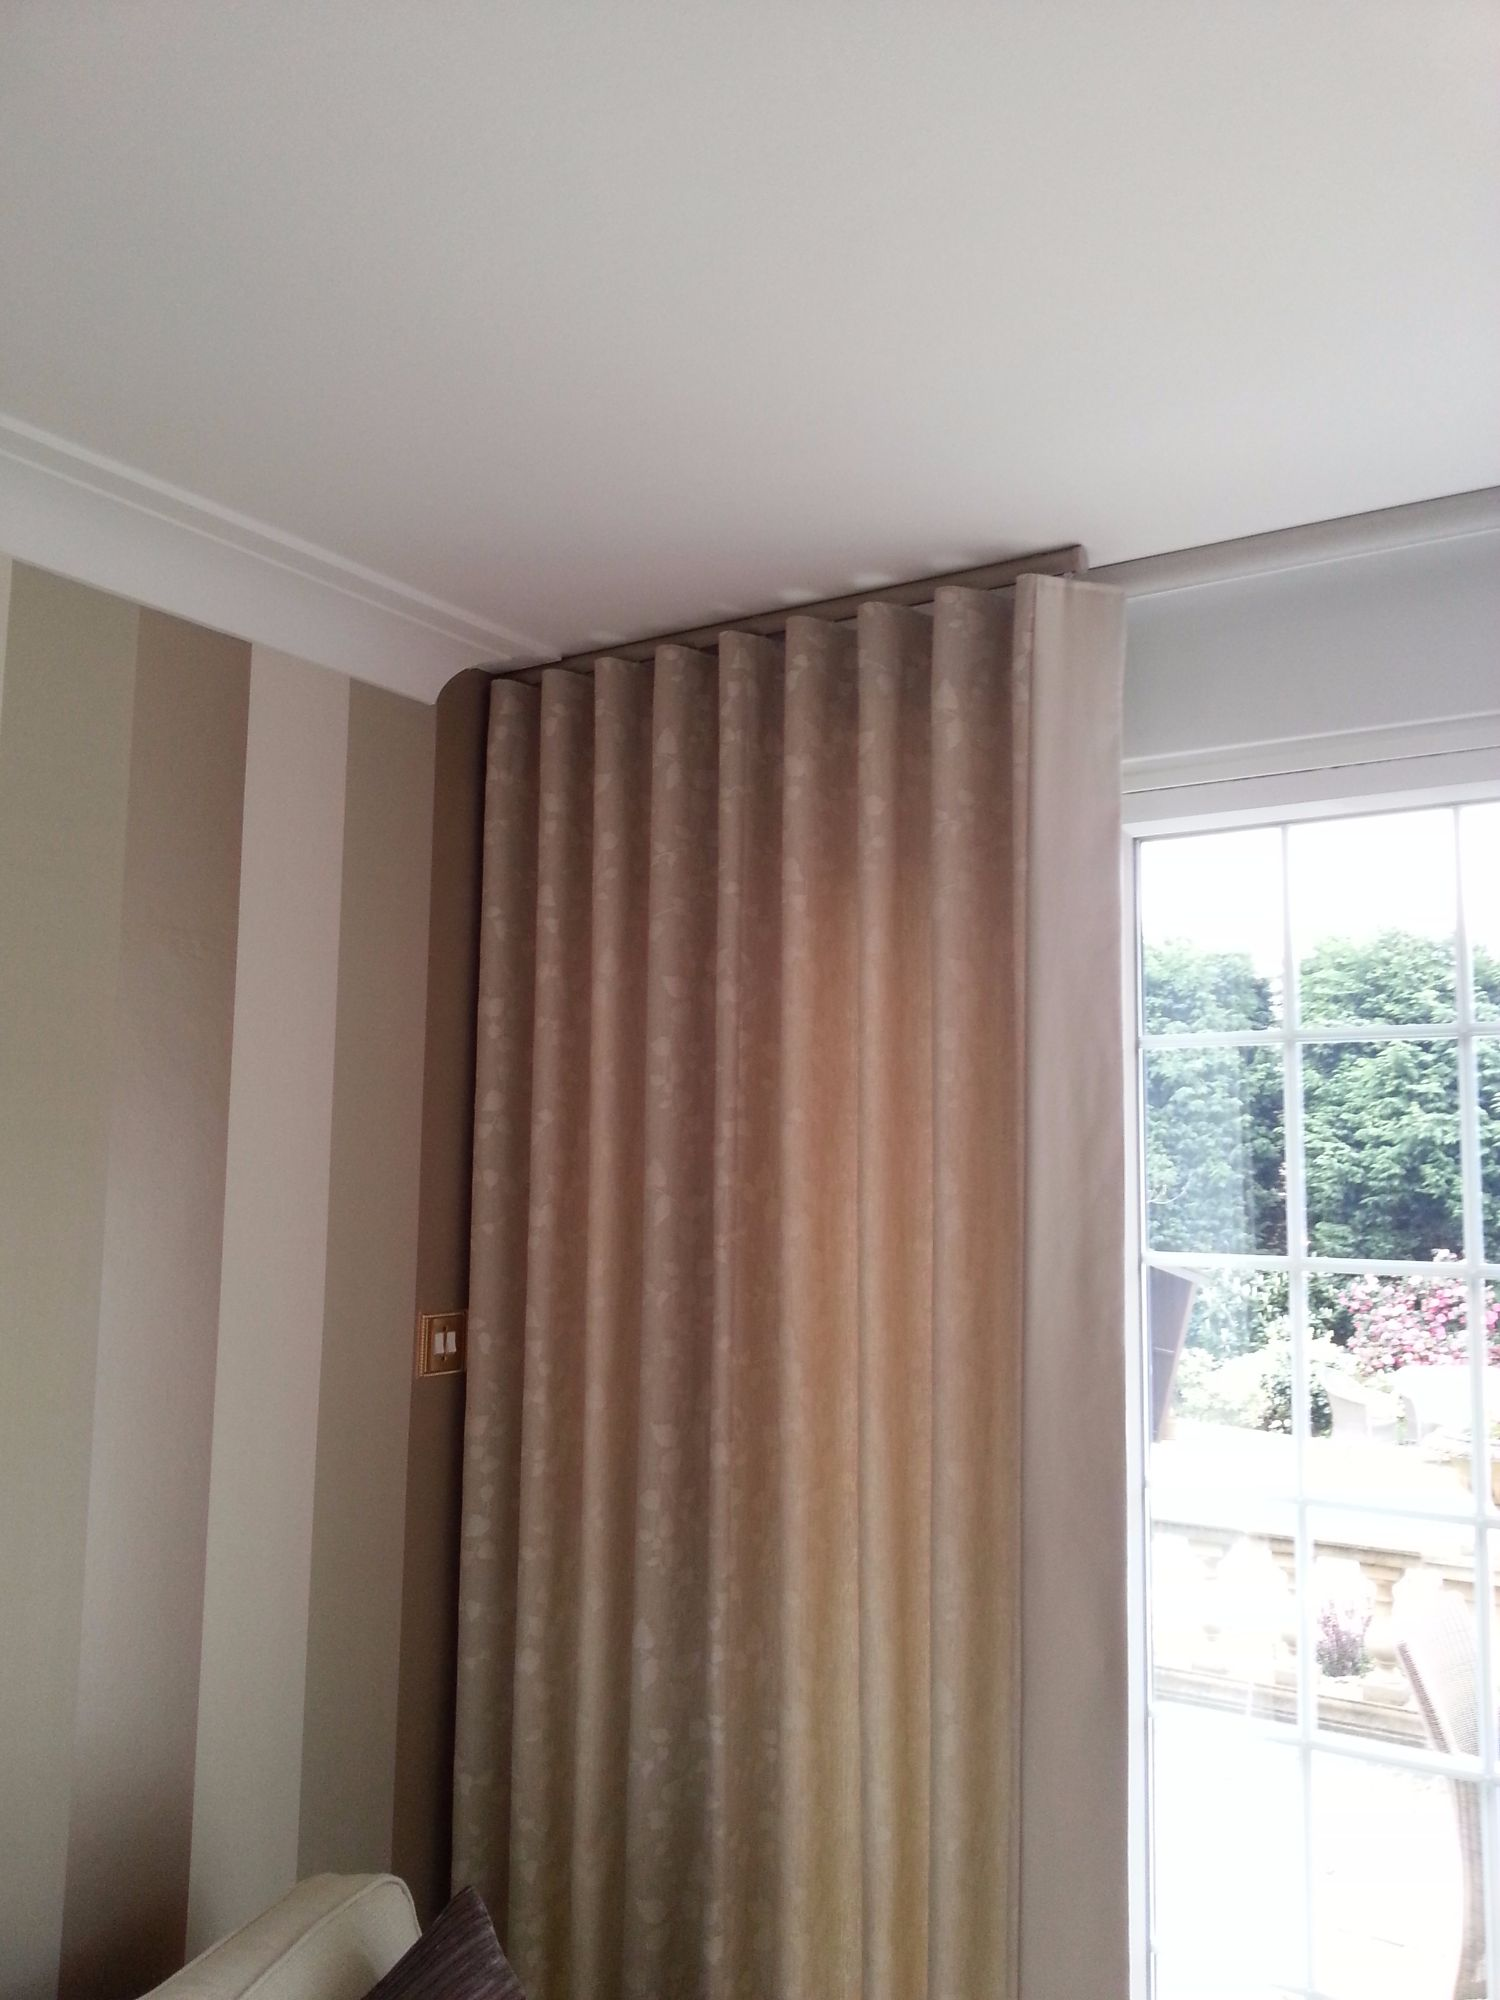 Handmade Curtains in Kent | Roman blinds made in Kent ...